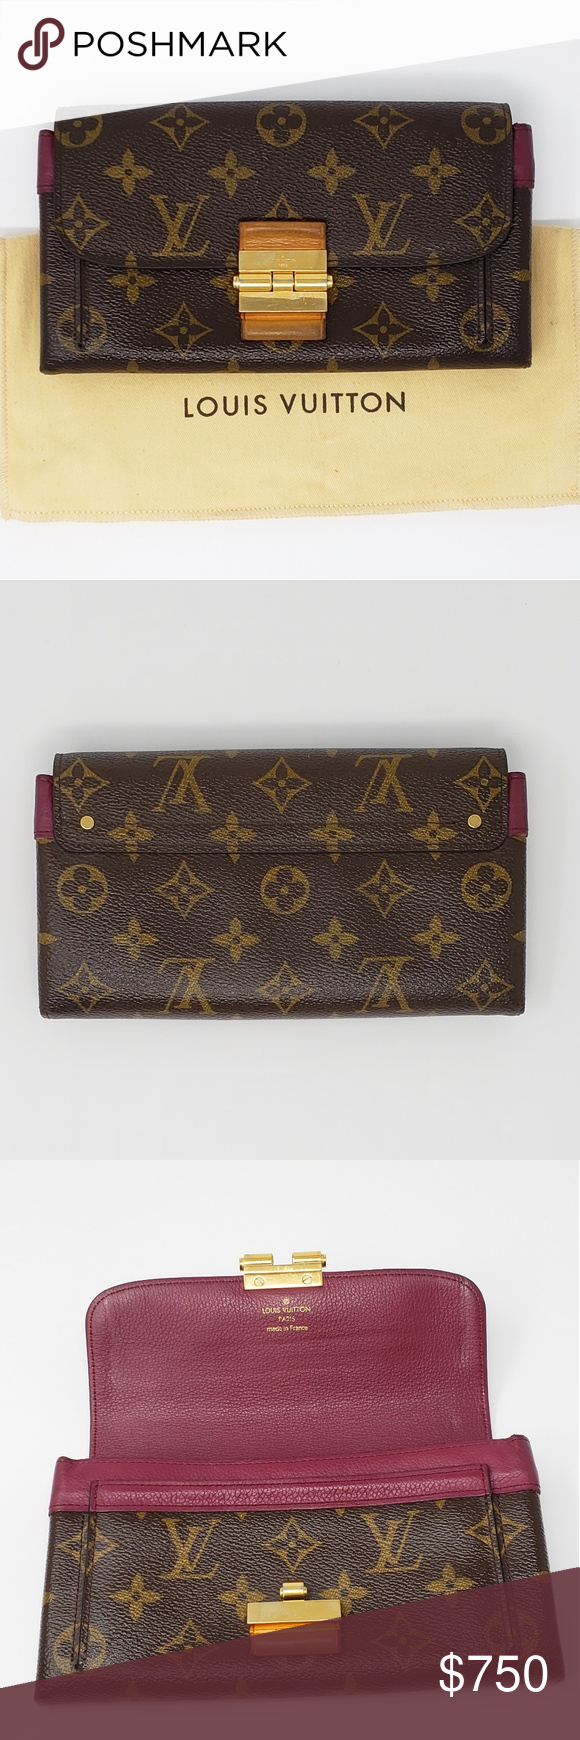 100 Auth Louis Vuitton Wallet Clutch Overall Condition is